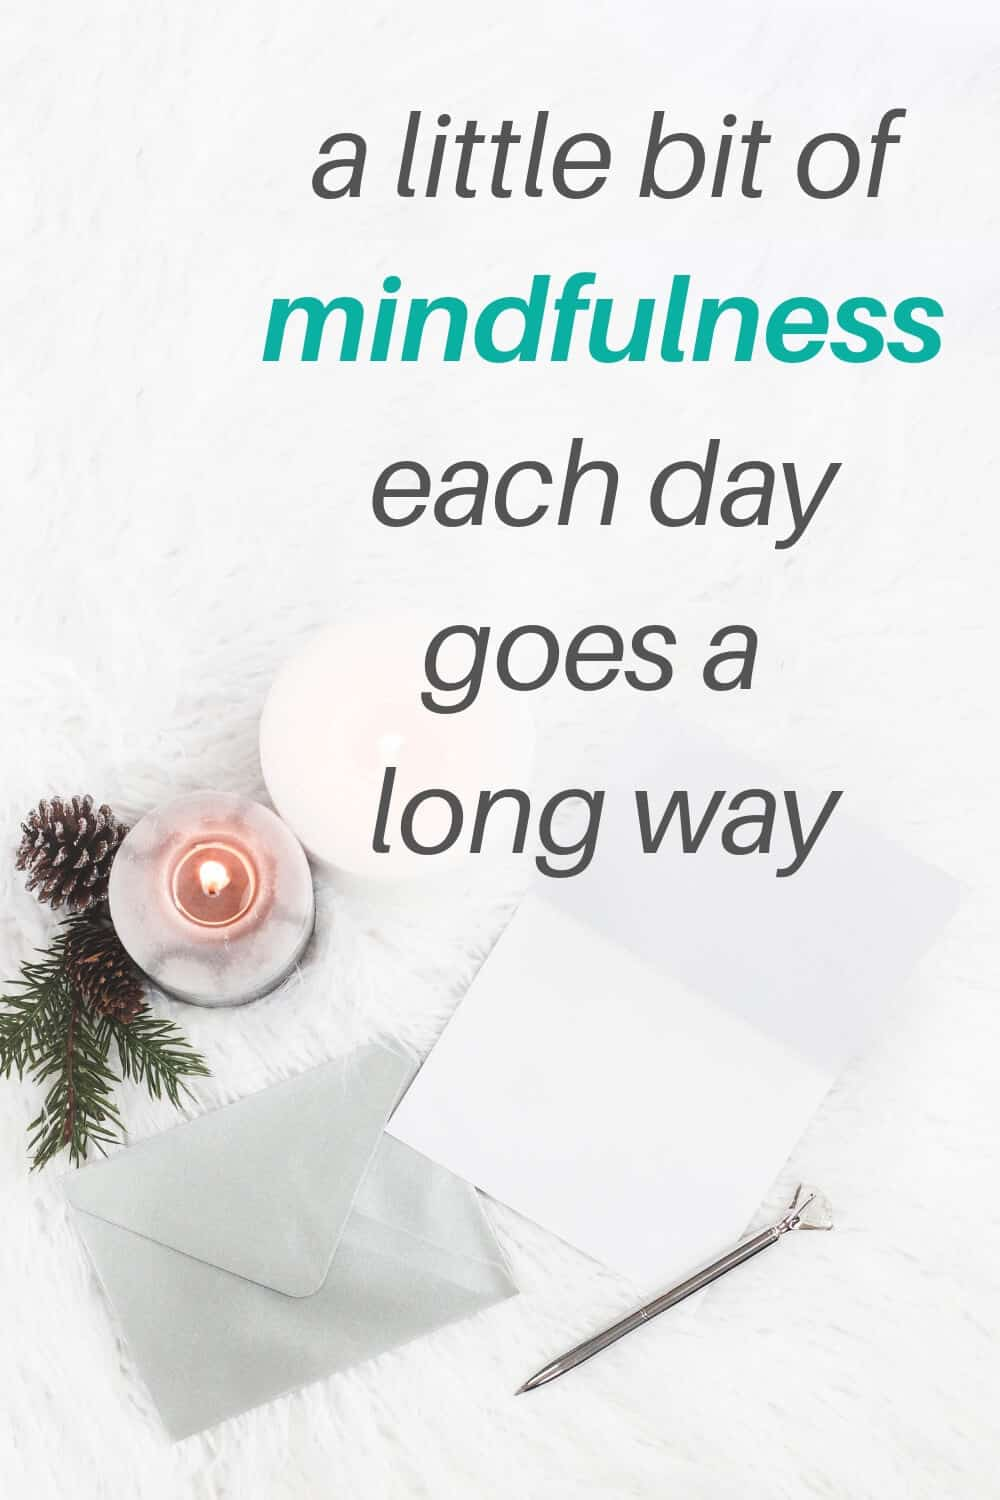 mindfulness a part of your day - 3